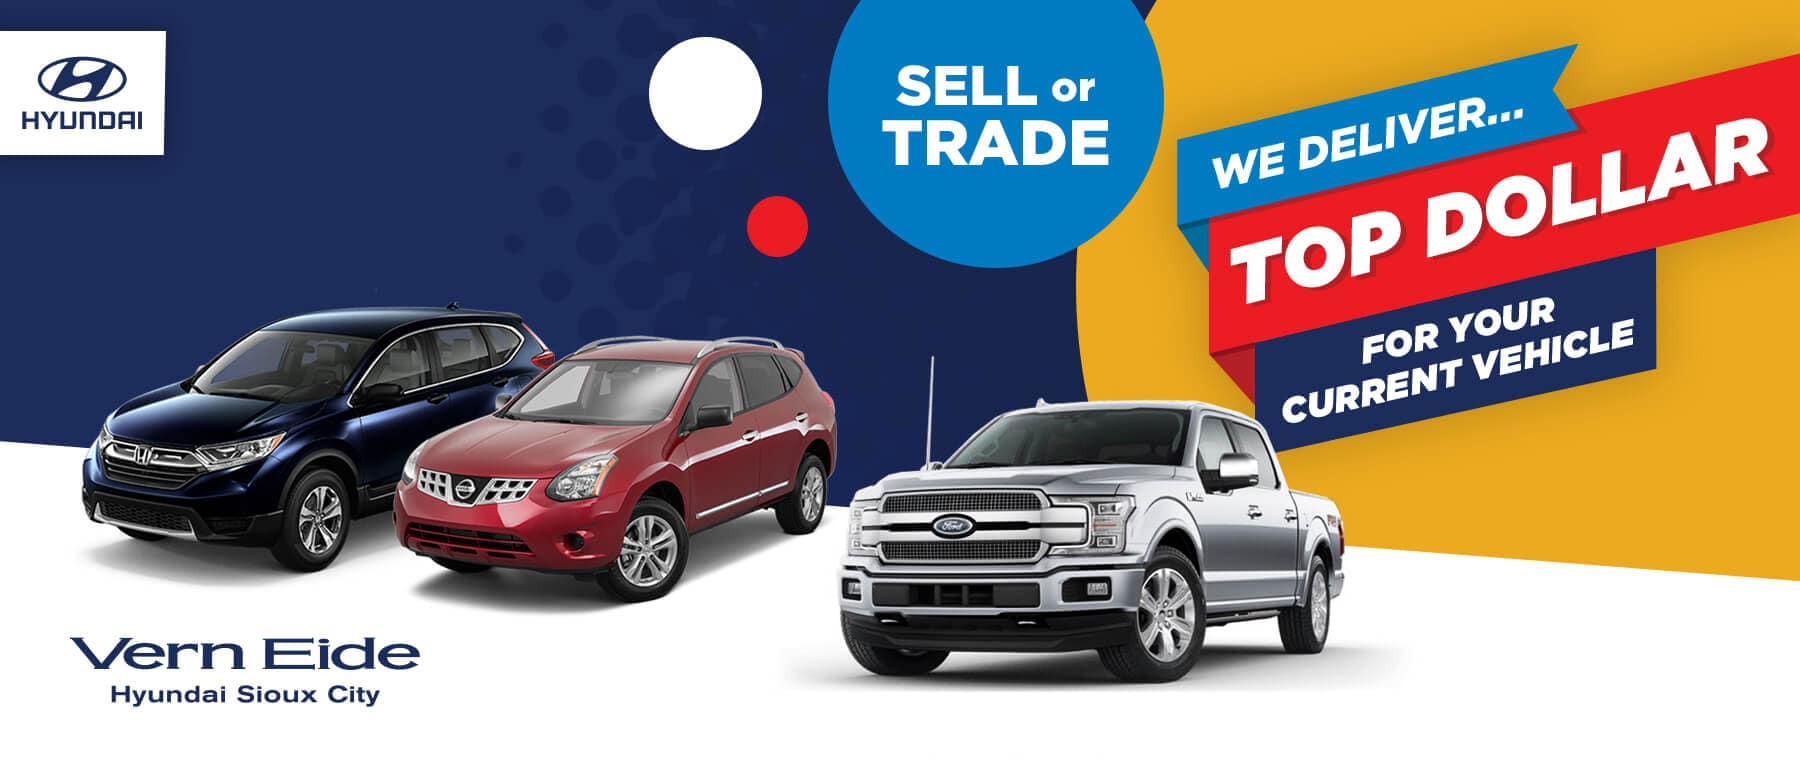 Vern Eide Hyundai Sioux City Sell or Trade Your Car HP Slide